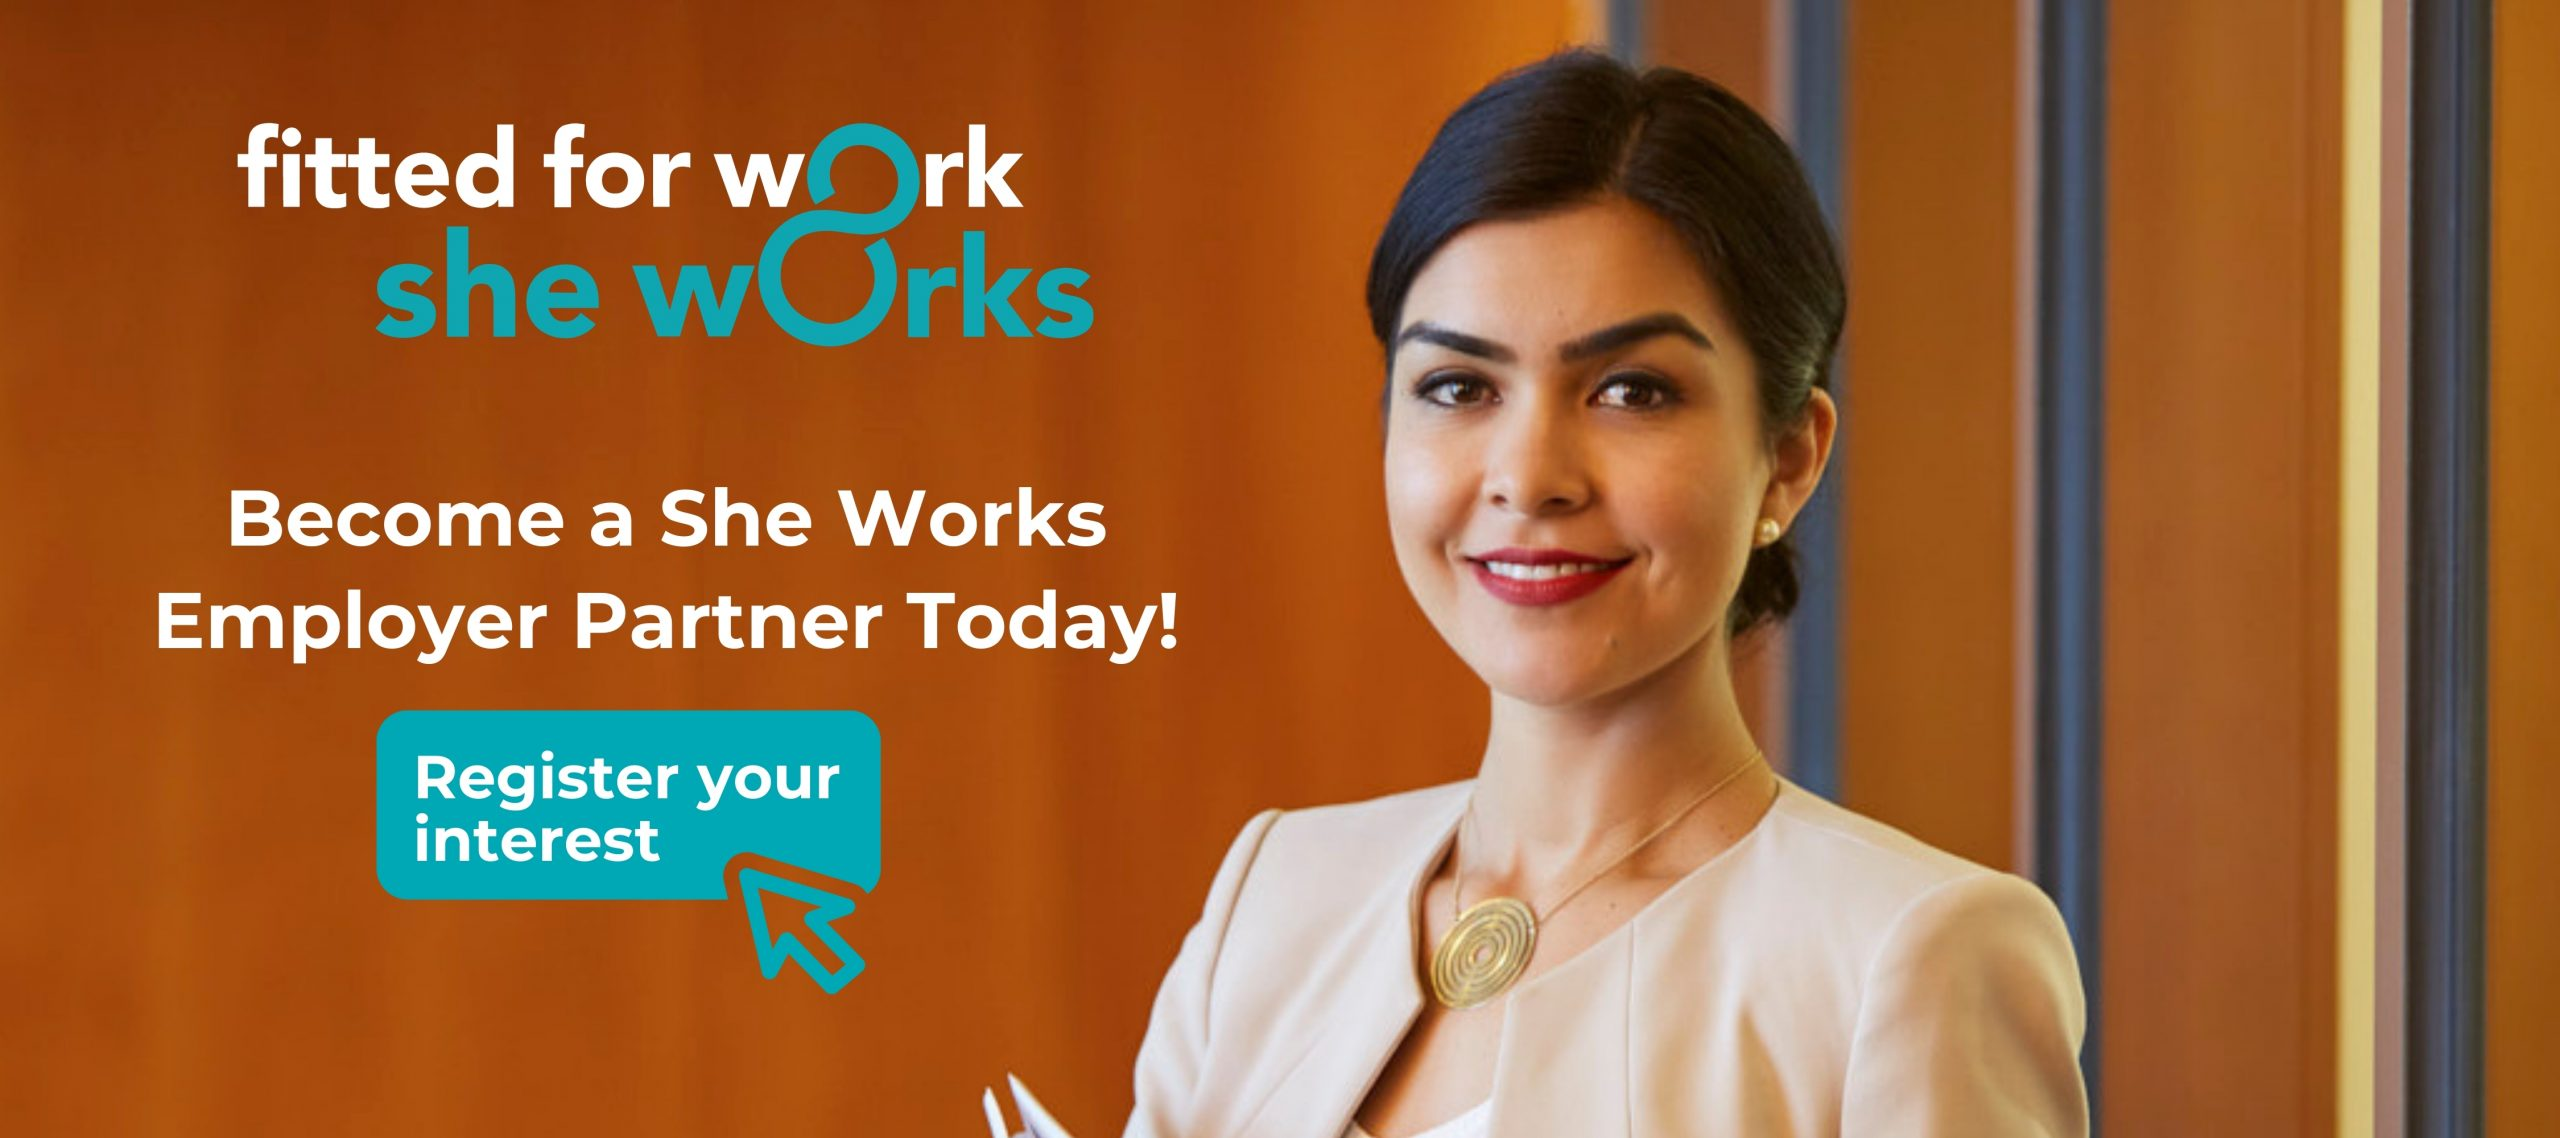 She Works logo. Become a She Works Employer Partner Today! Register your interest.